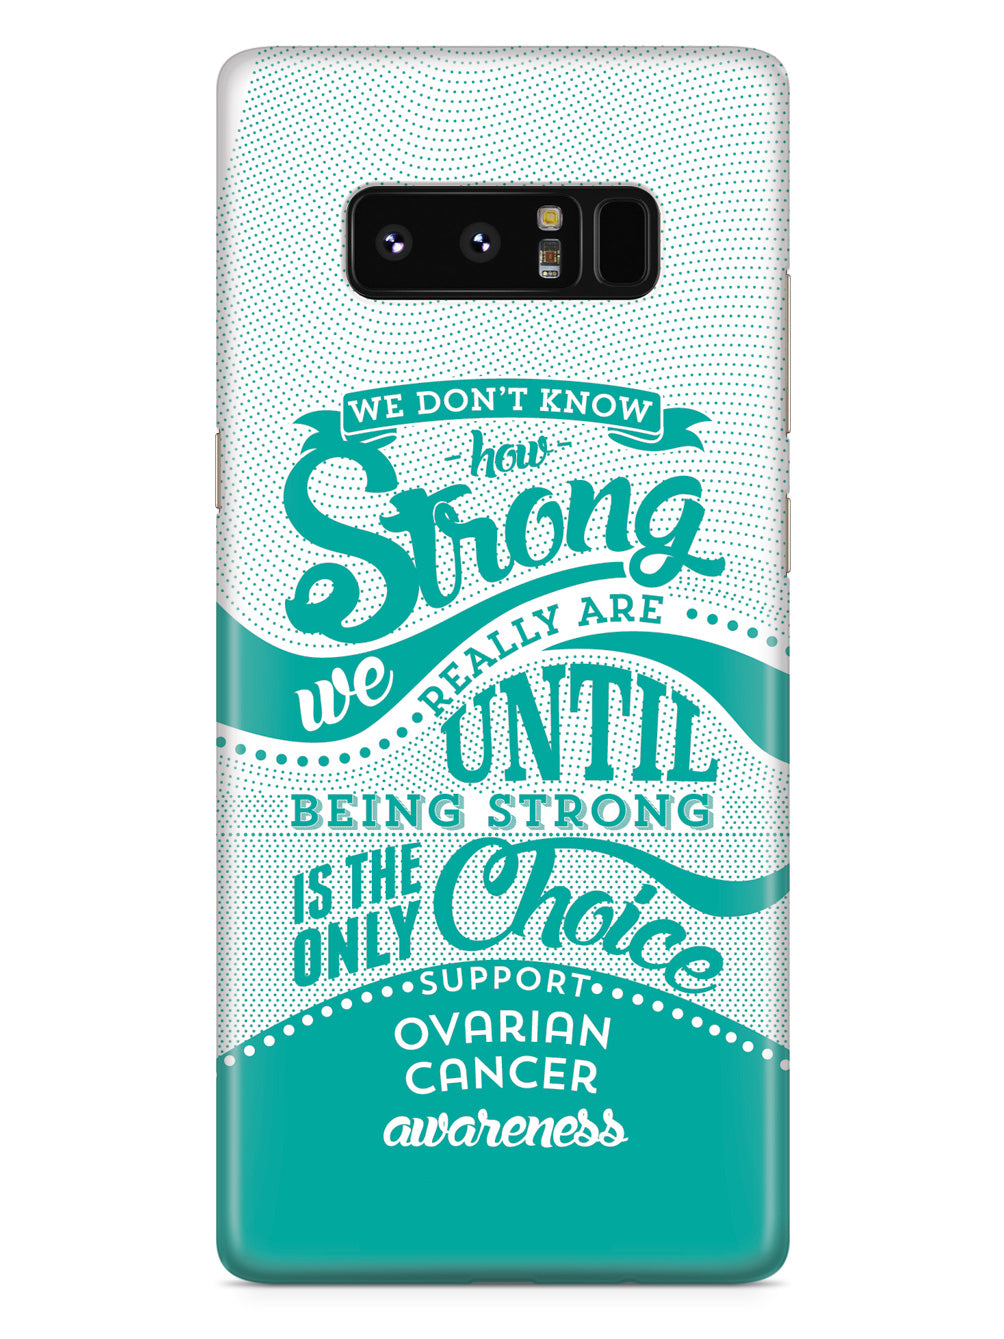 How Strong - Ovarian Cancer Awareness Case